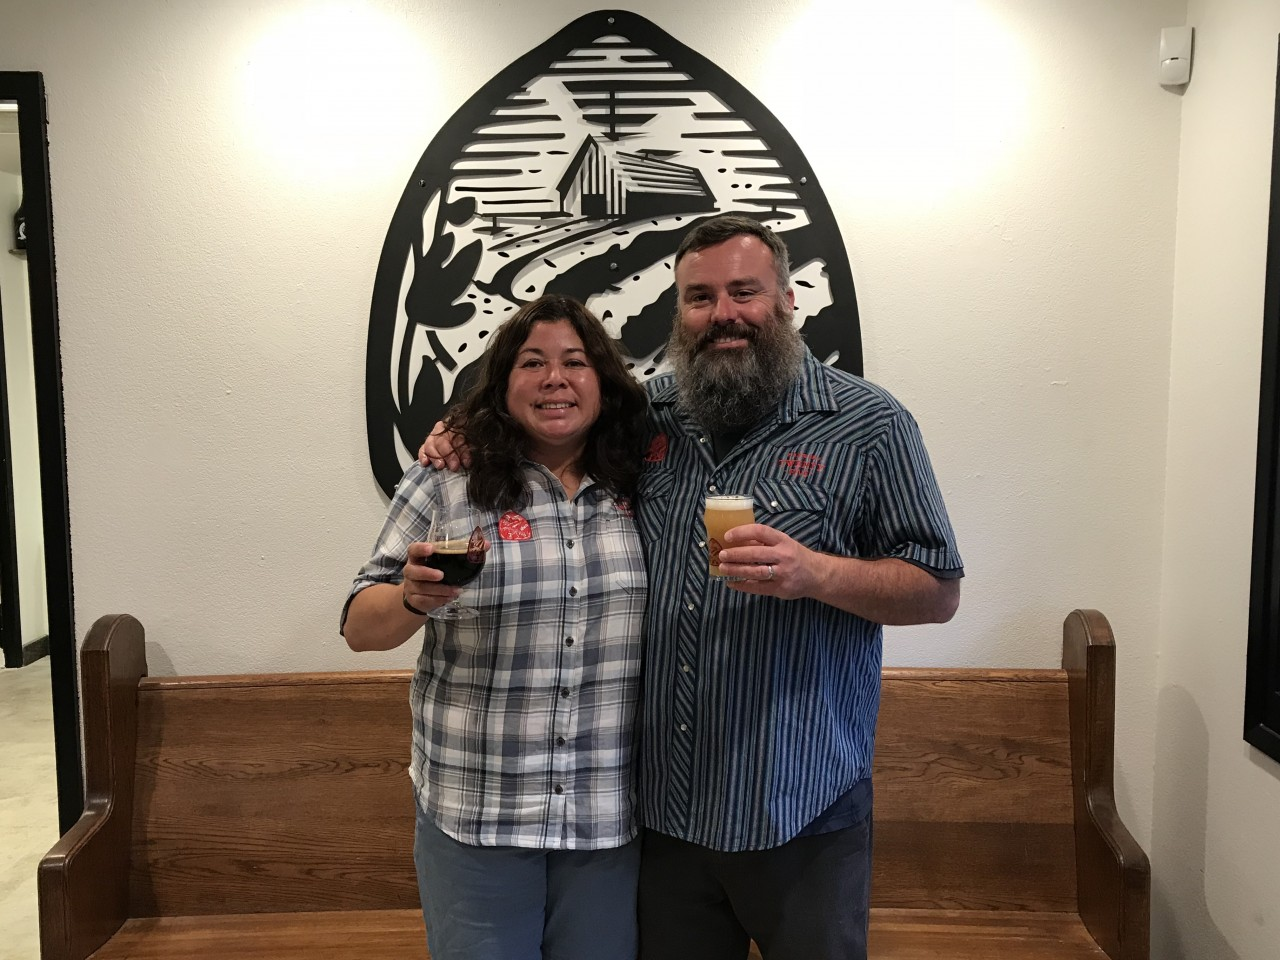 Fran and Sean Fitzharris inside the Brewery Twenty Five taproom in San Juan Bautista. Photo by Frank Perez.